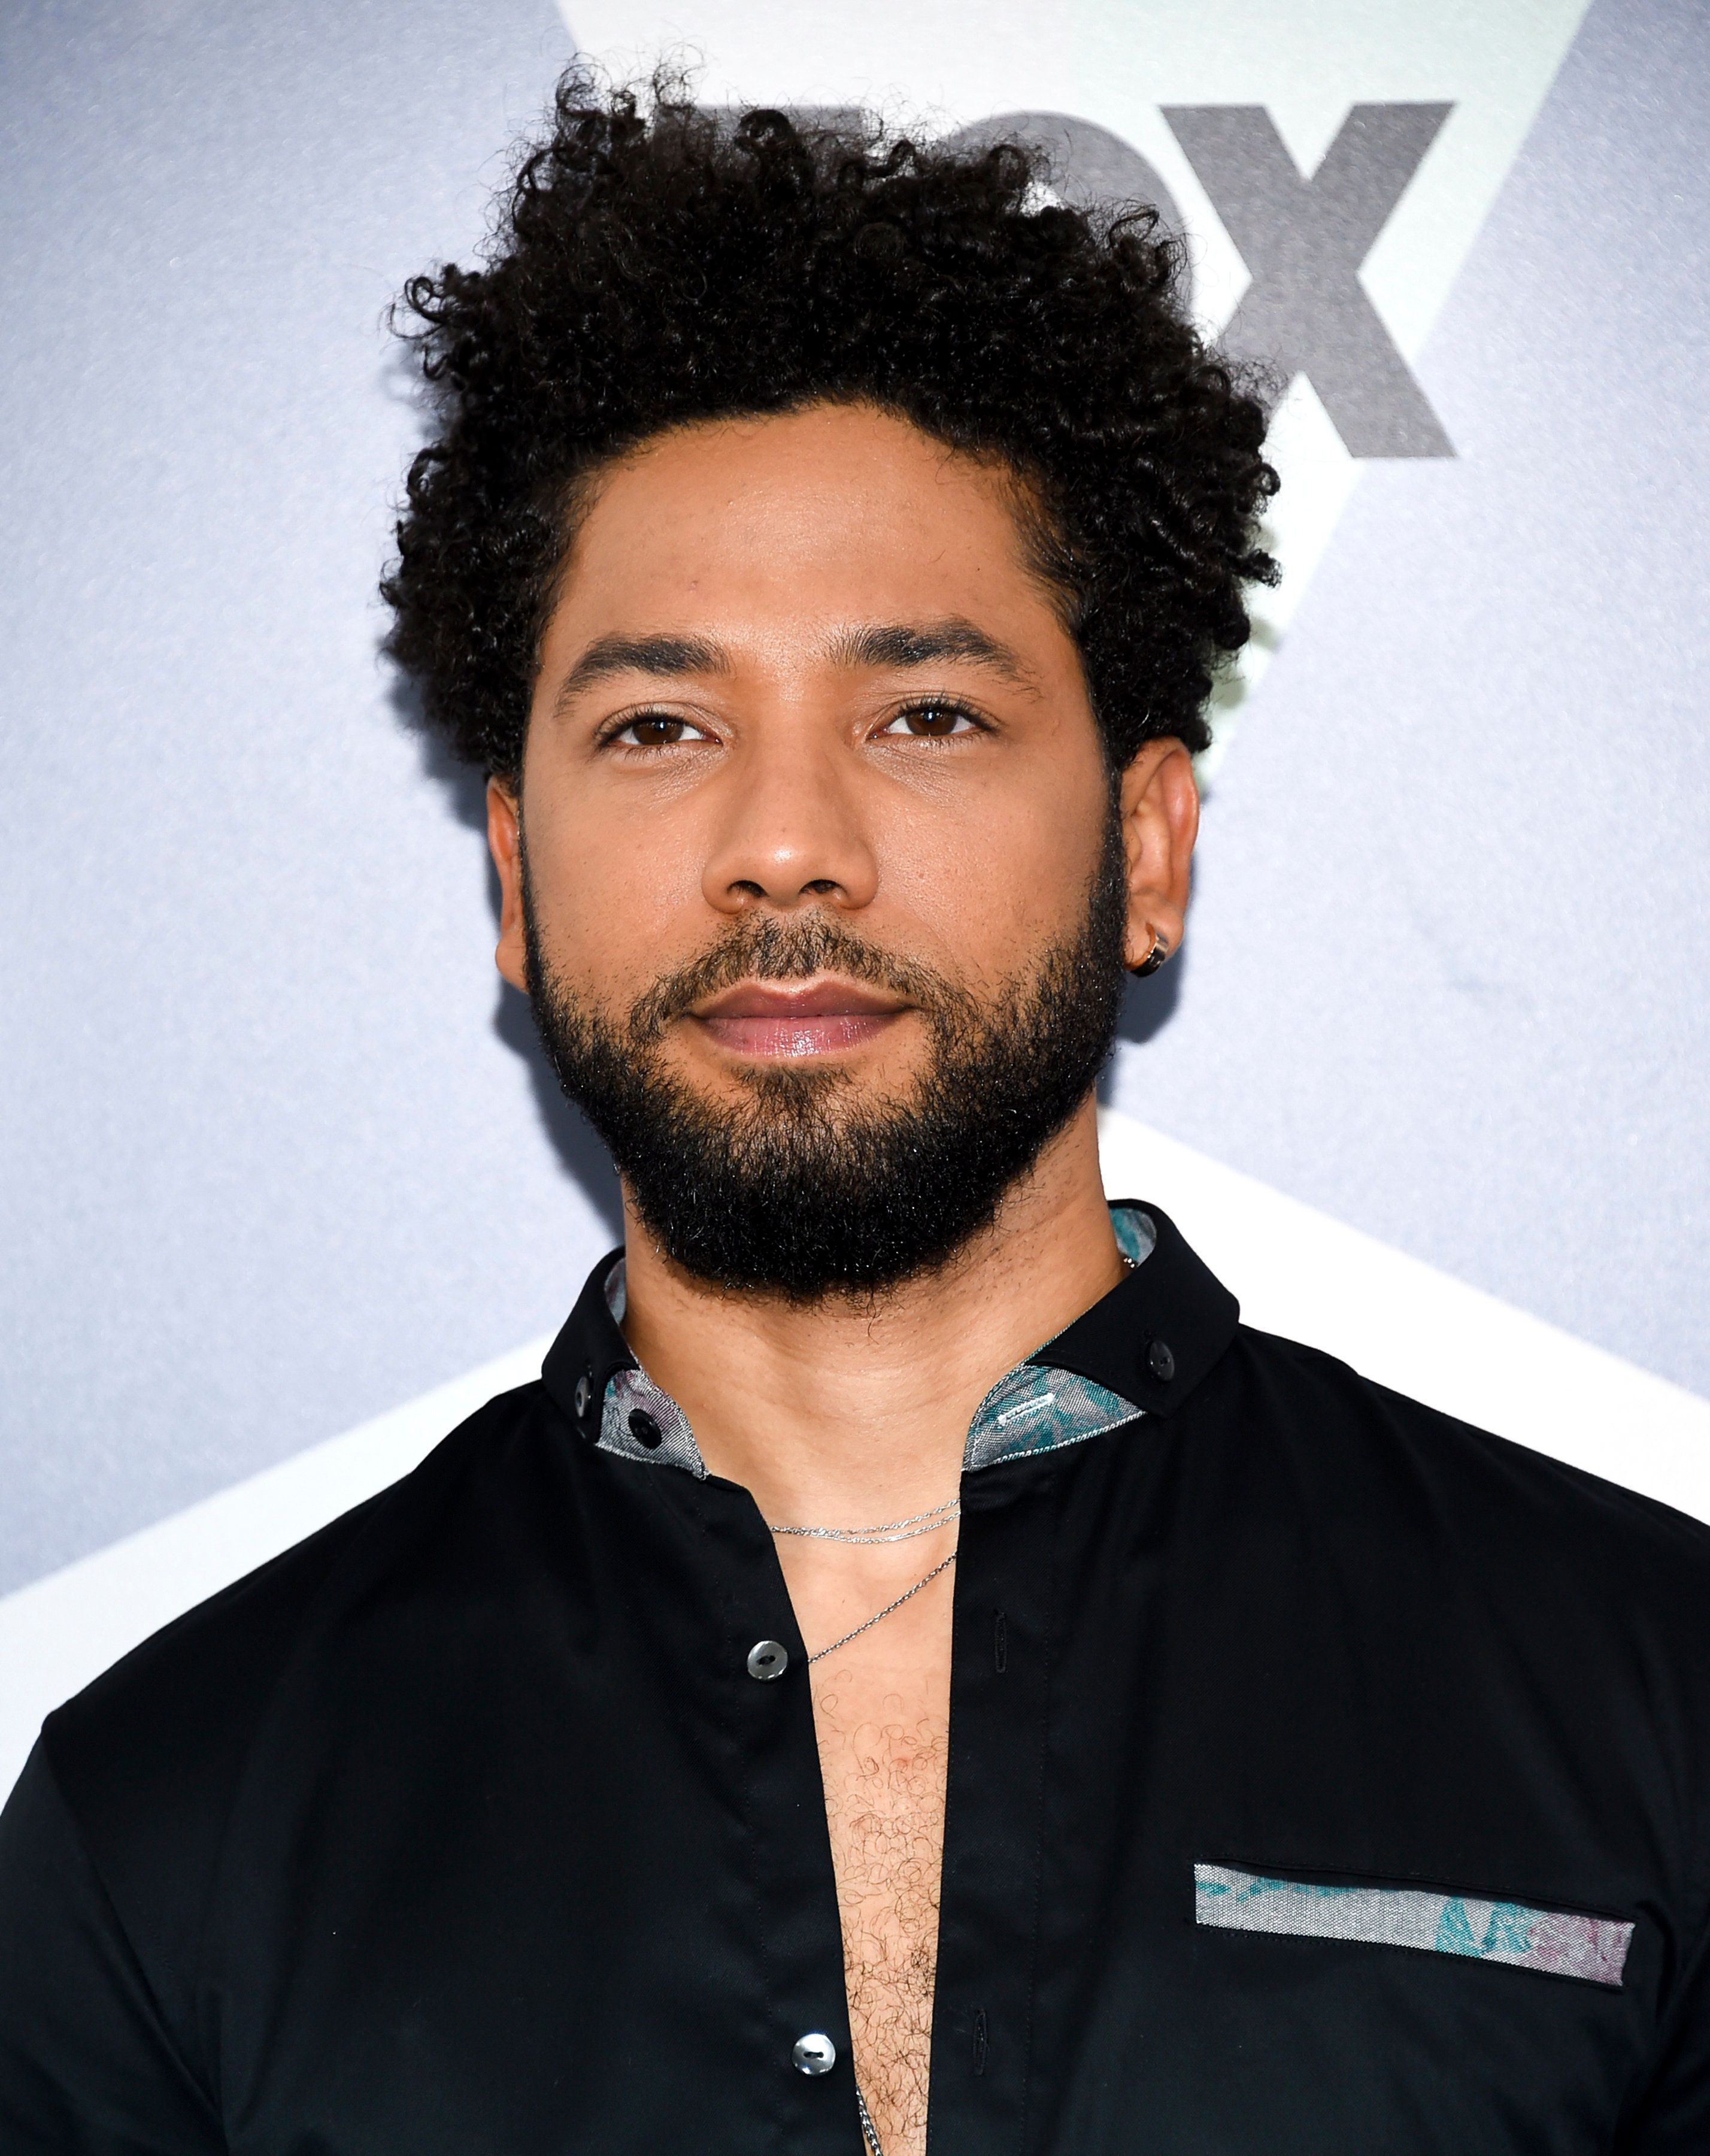 Actor and singer Jussie Smollett attends the Fox Networks Group 2018 programming presentation after party at Wollman Rink in Central Park on Monday, May 14, 2018, in New York. (Photo by Evan Agostini/Invision/AP)